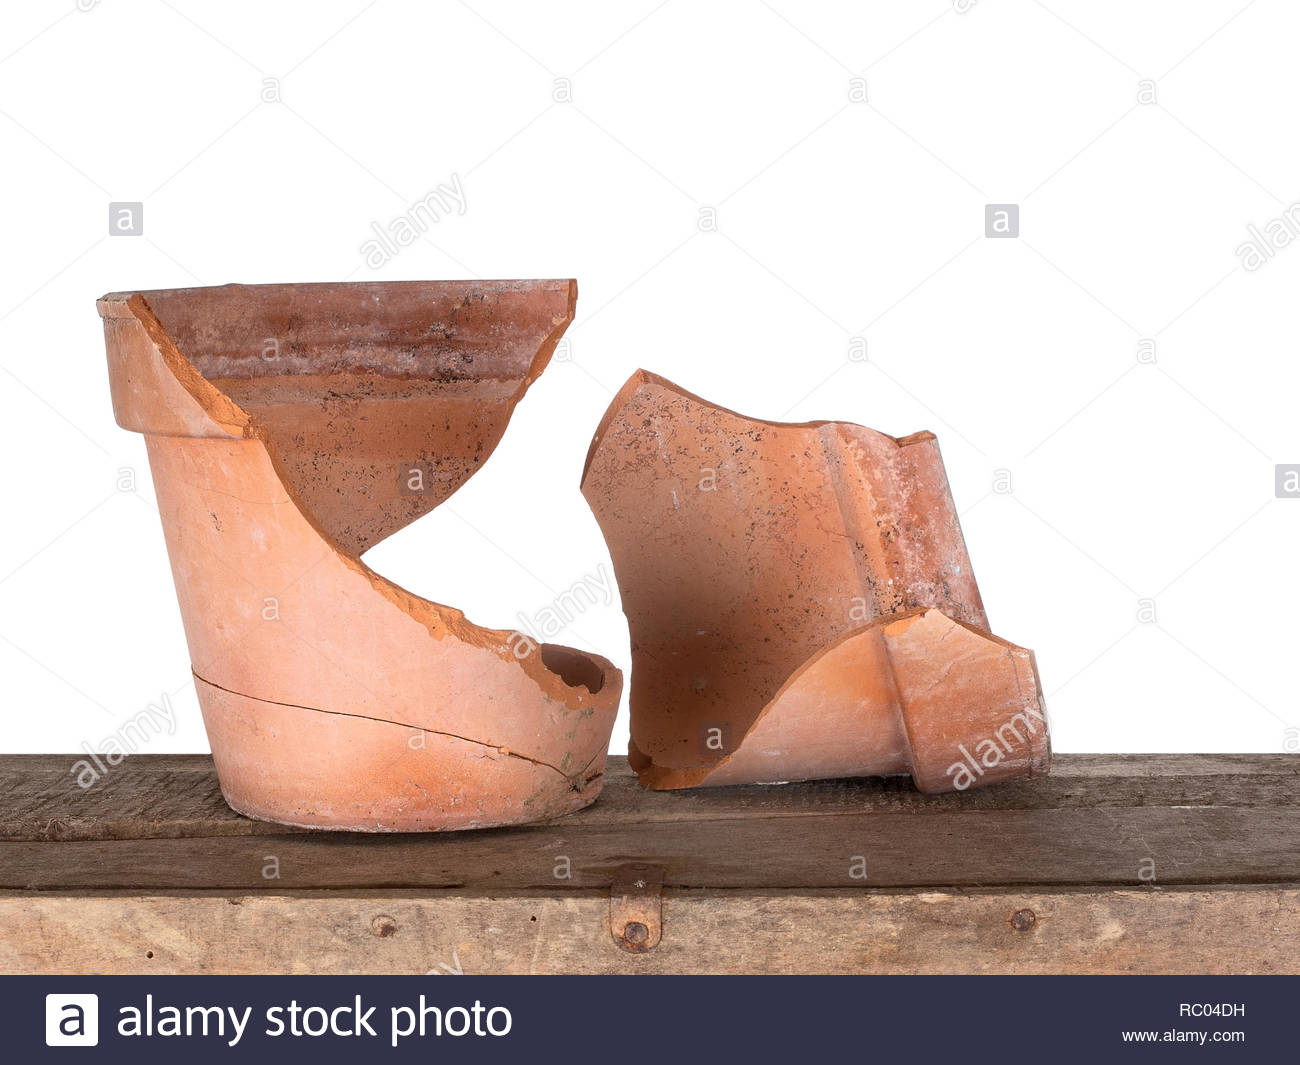 a broken terracotta flowerpot on old box isolated on white bhind frost damage RC04DH